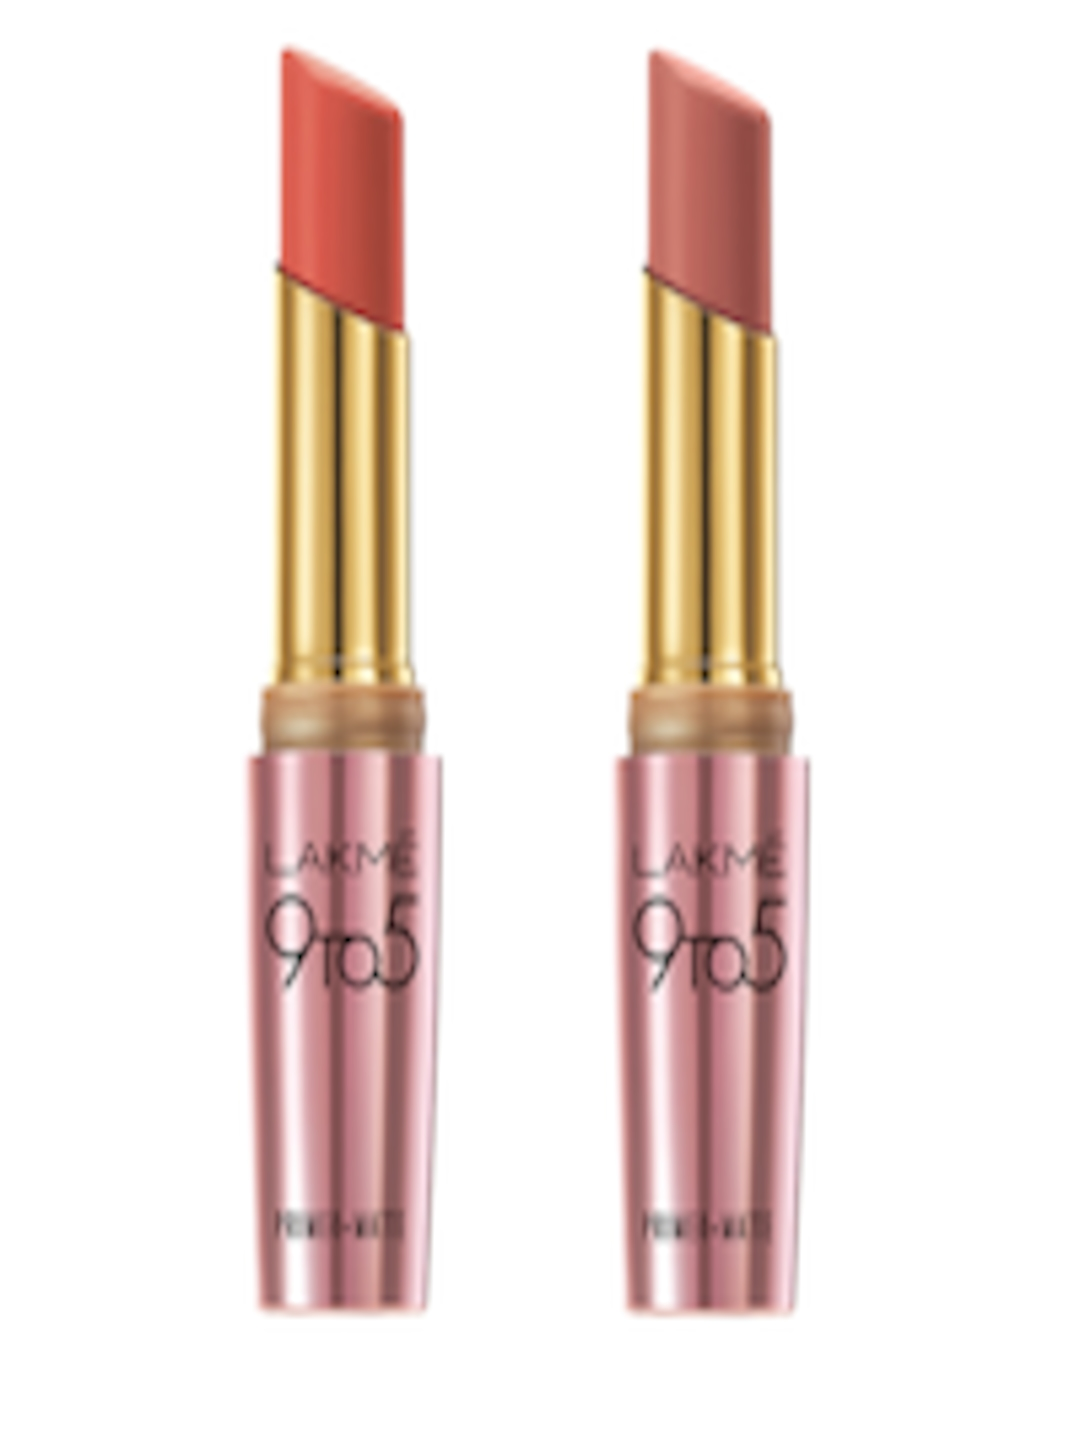 Lakme 9 to 5 Primer + Matte Lipstick Collection   Review